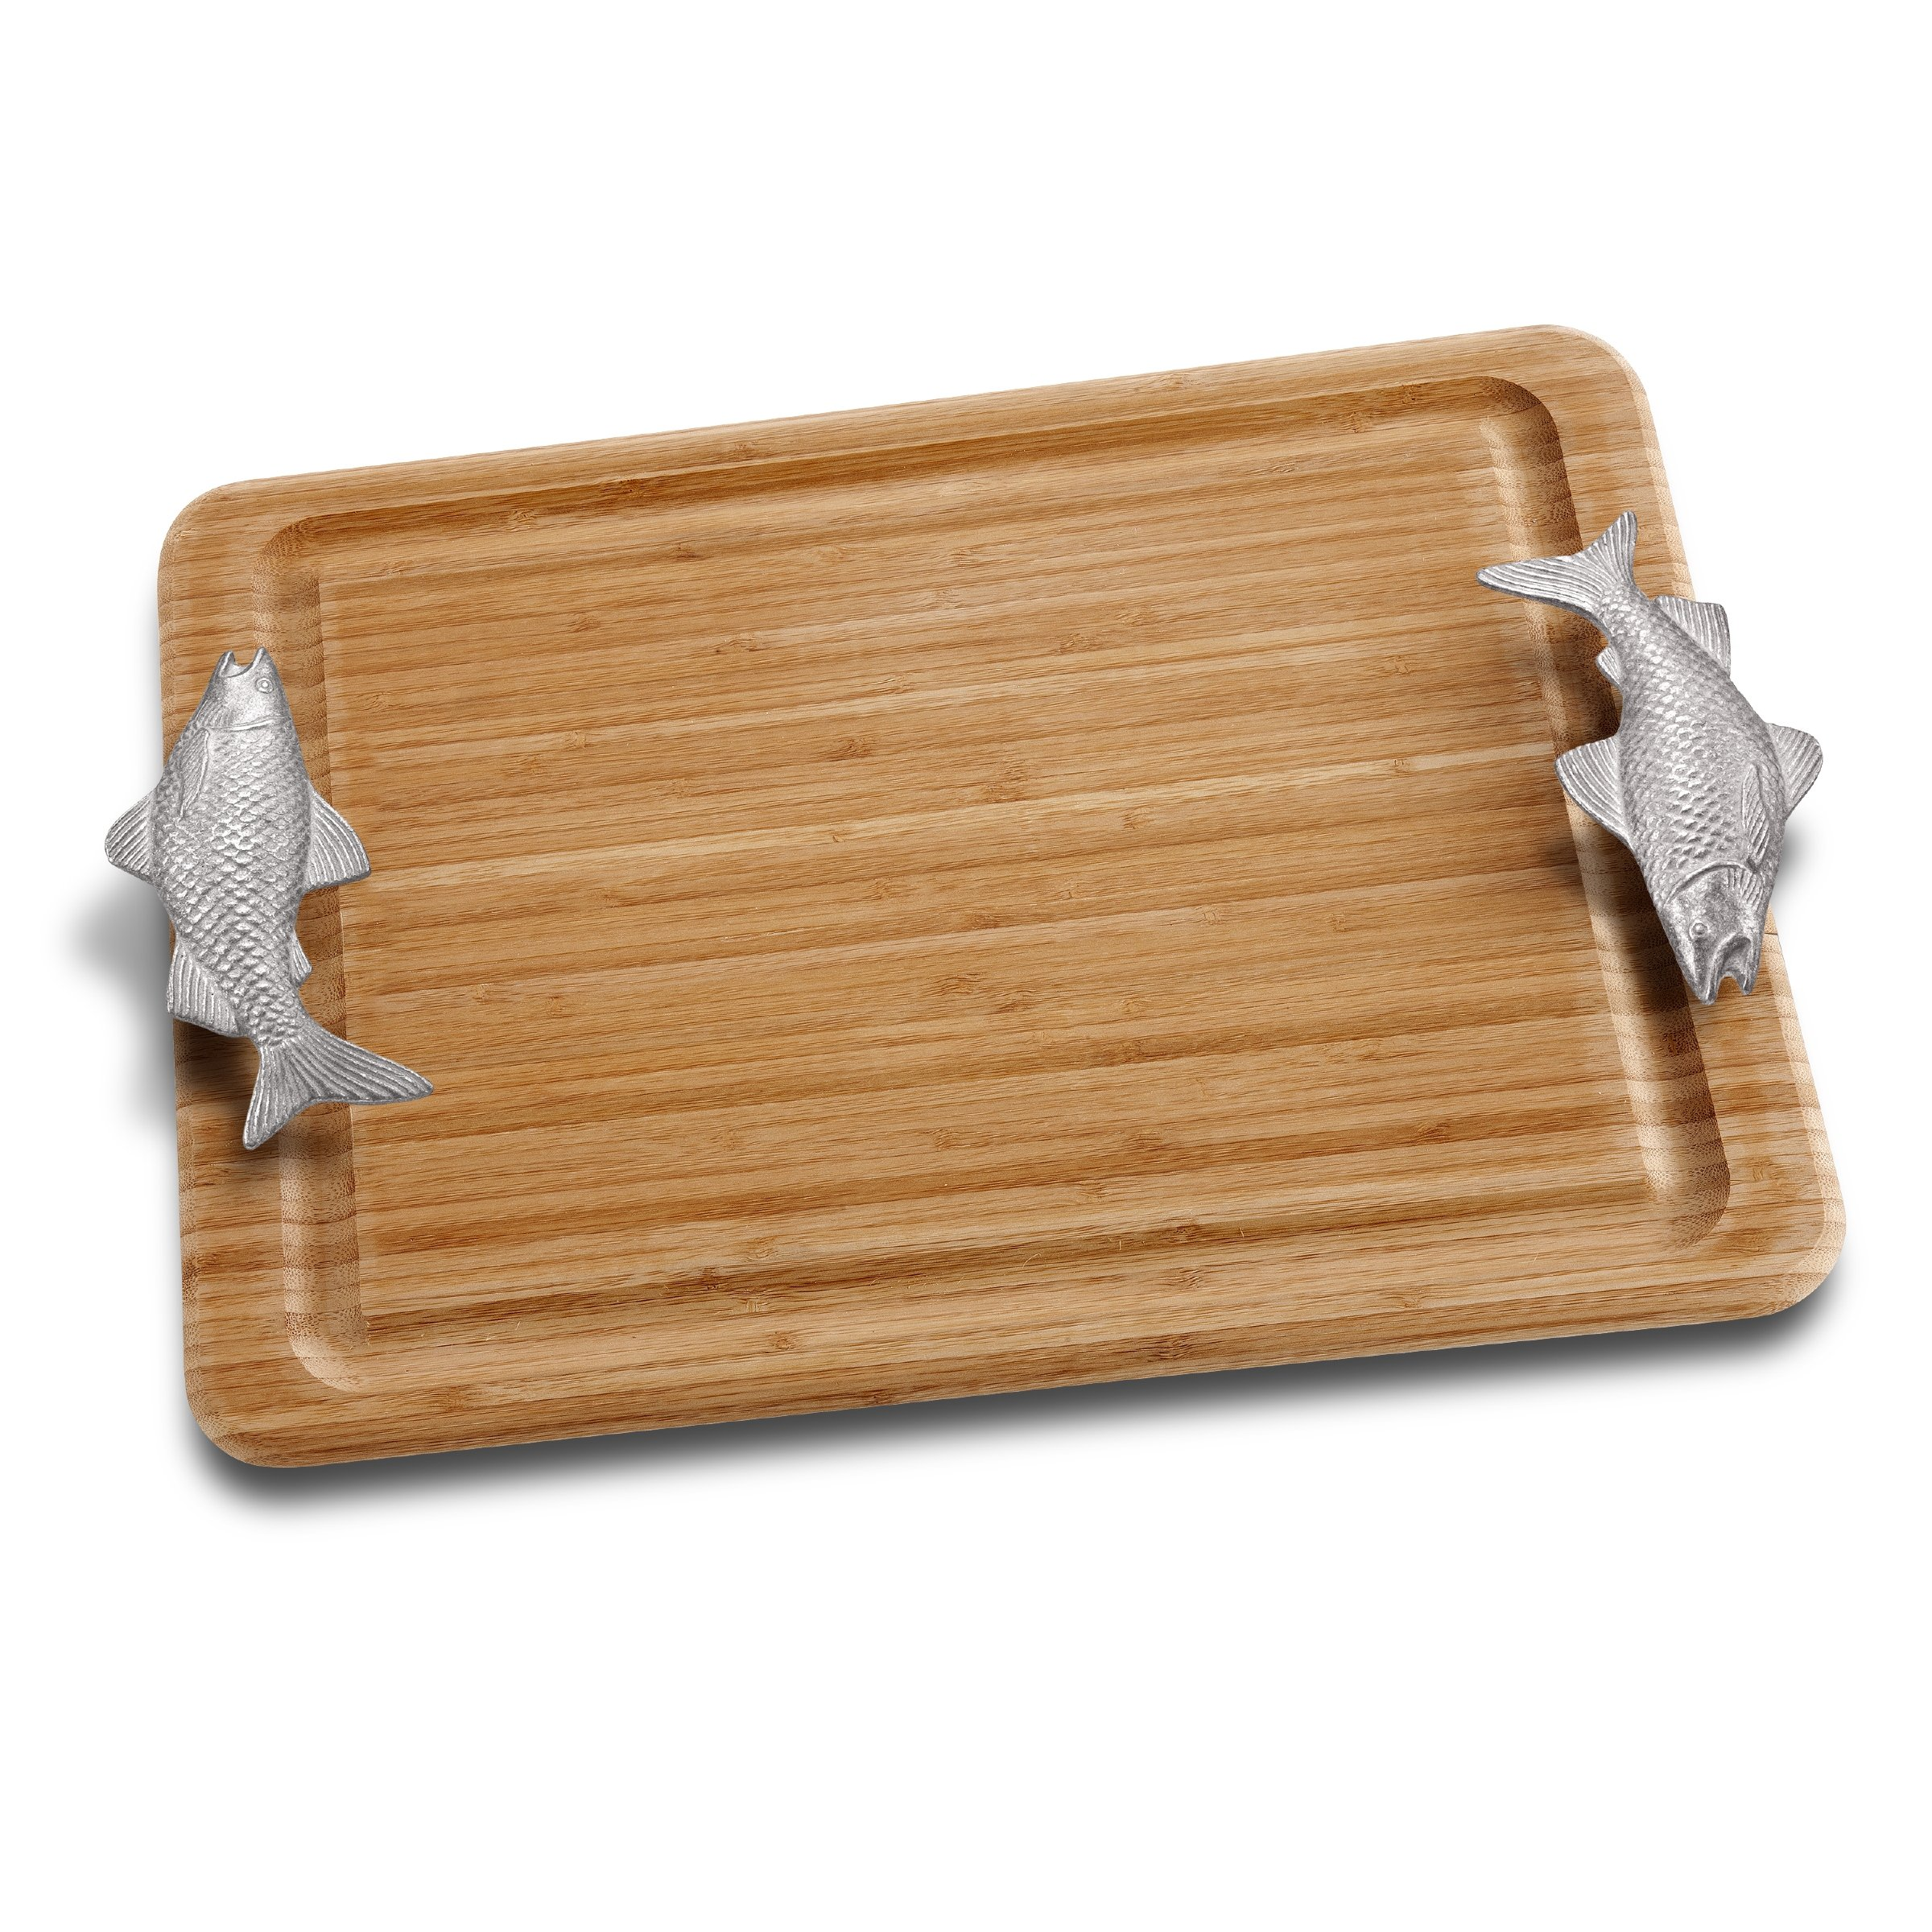 Wilton Armetale Large Carving Board with Fish Handles